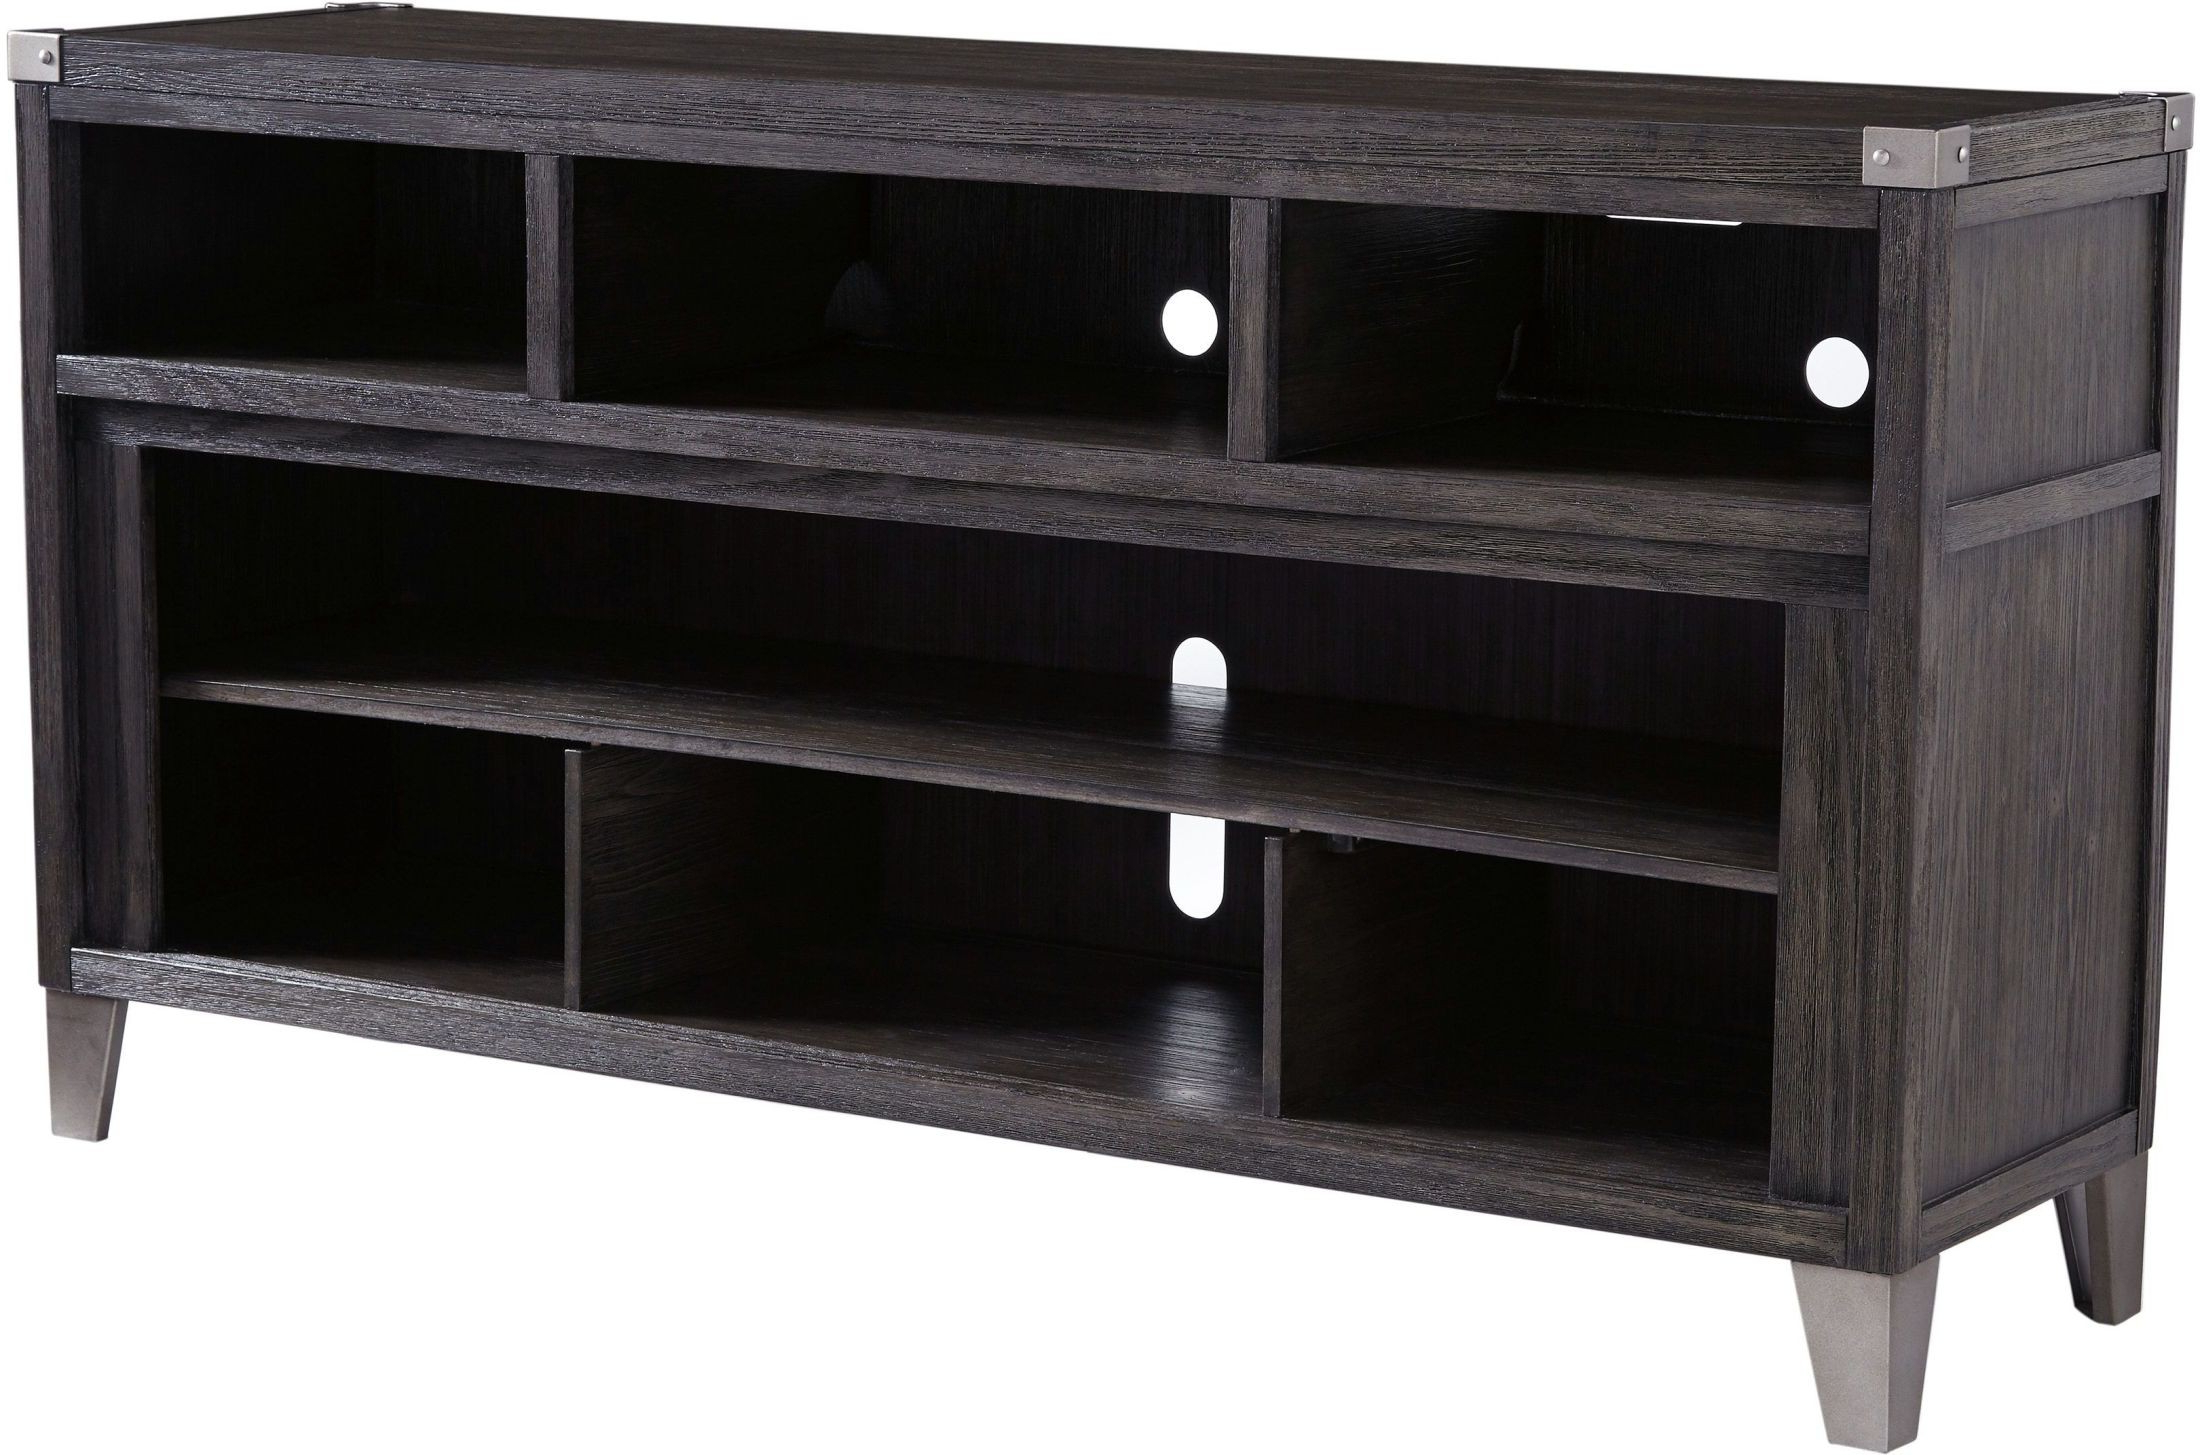 Todoe Gray Lg Tv Stand From Ashley | Coleman Furniture In Vista 68 Inch Tv Stands (View 8 of 20)